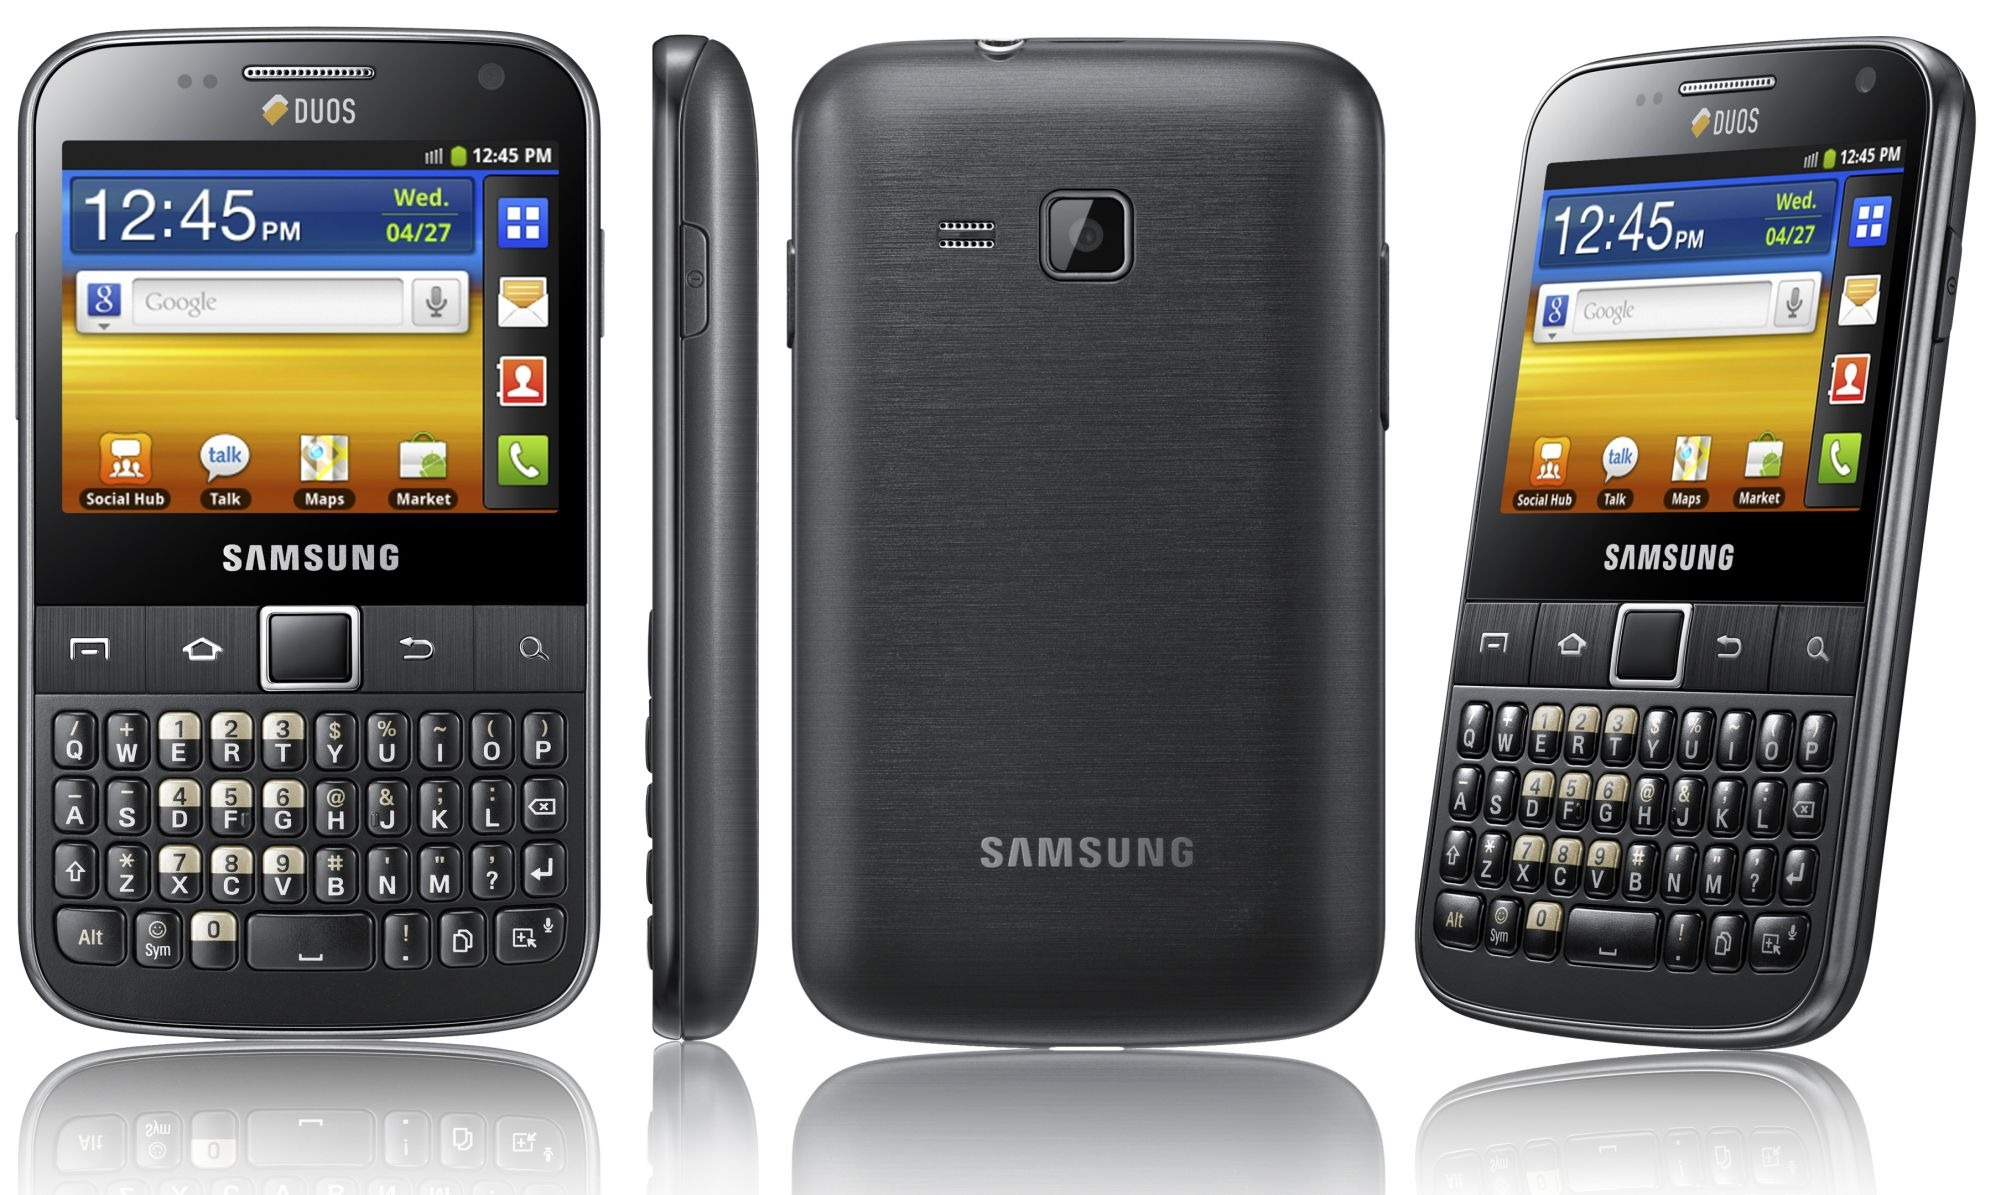 Samsung Galaxy Y Pro Duos - nowy smartphone z Android 2.3 i Dual SIM